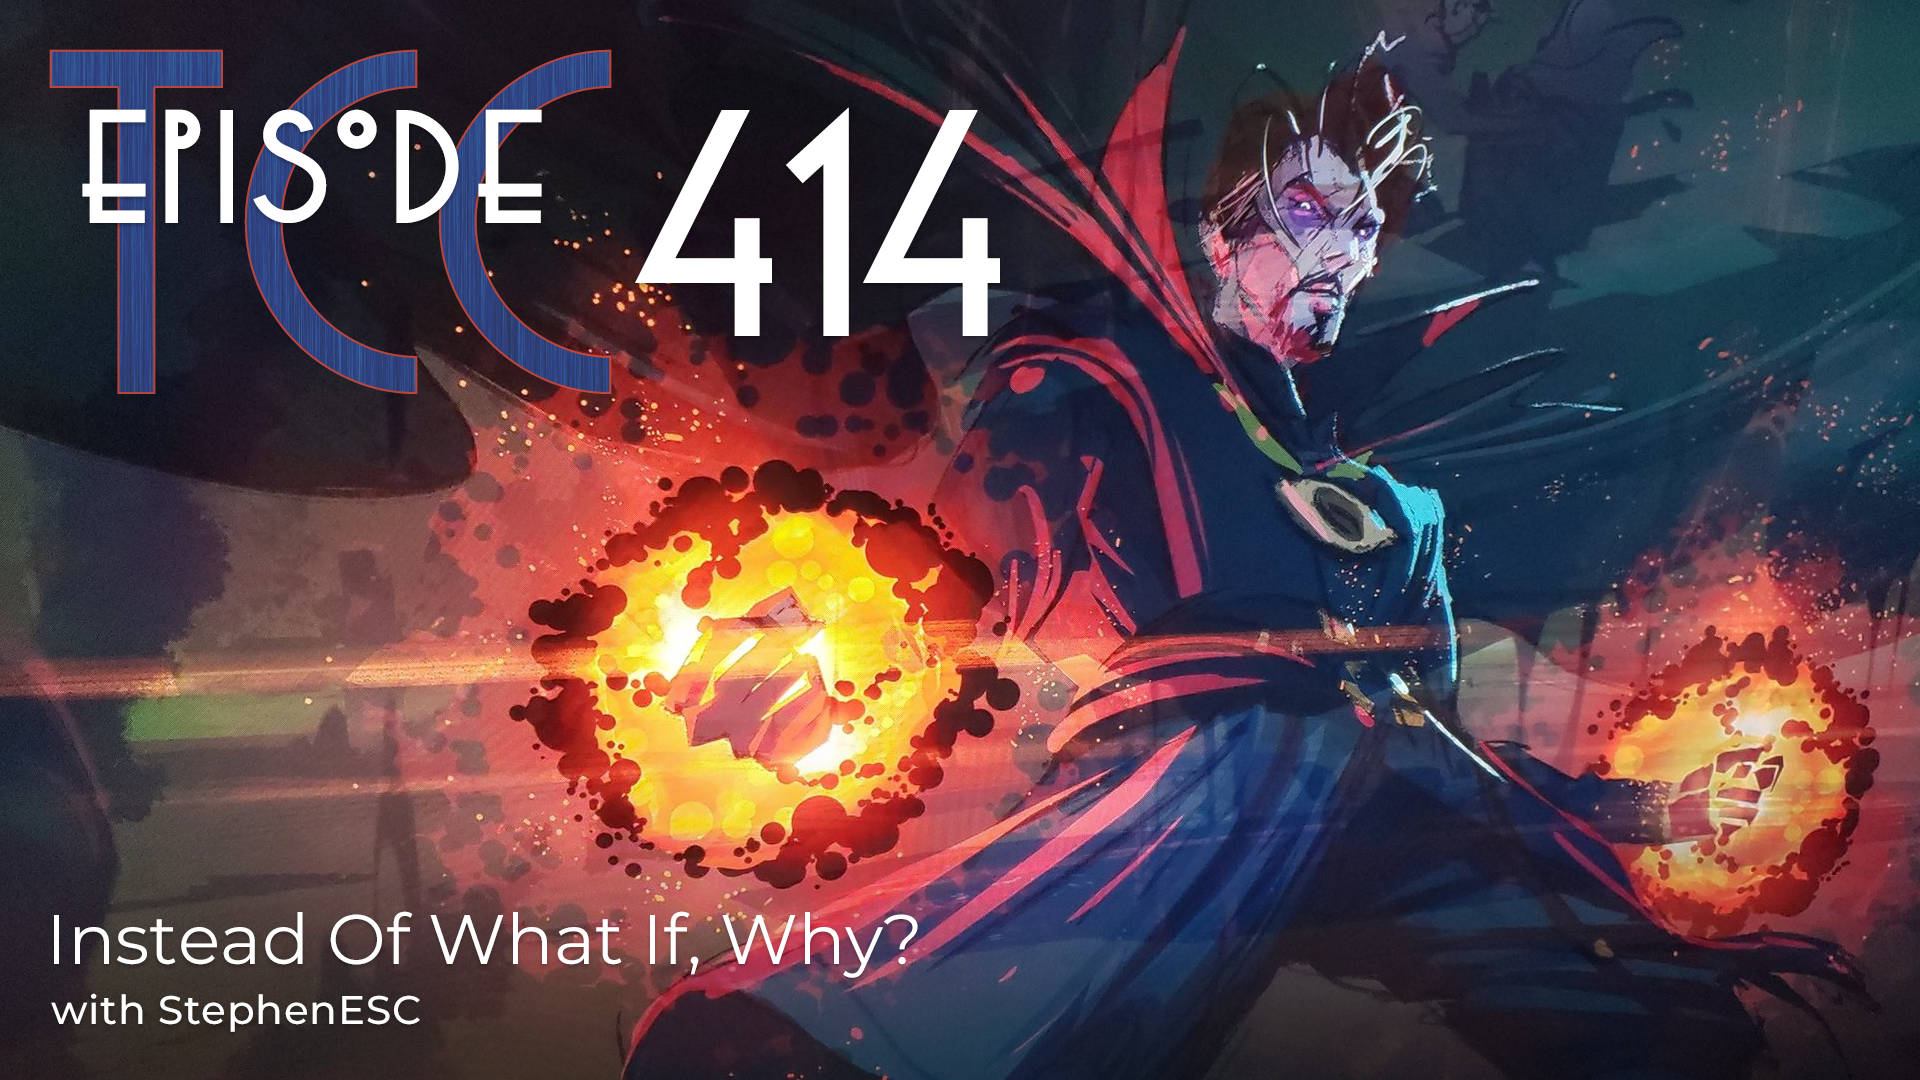 The Citadel Cafe 414: Instead Of What If, Why?